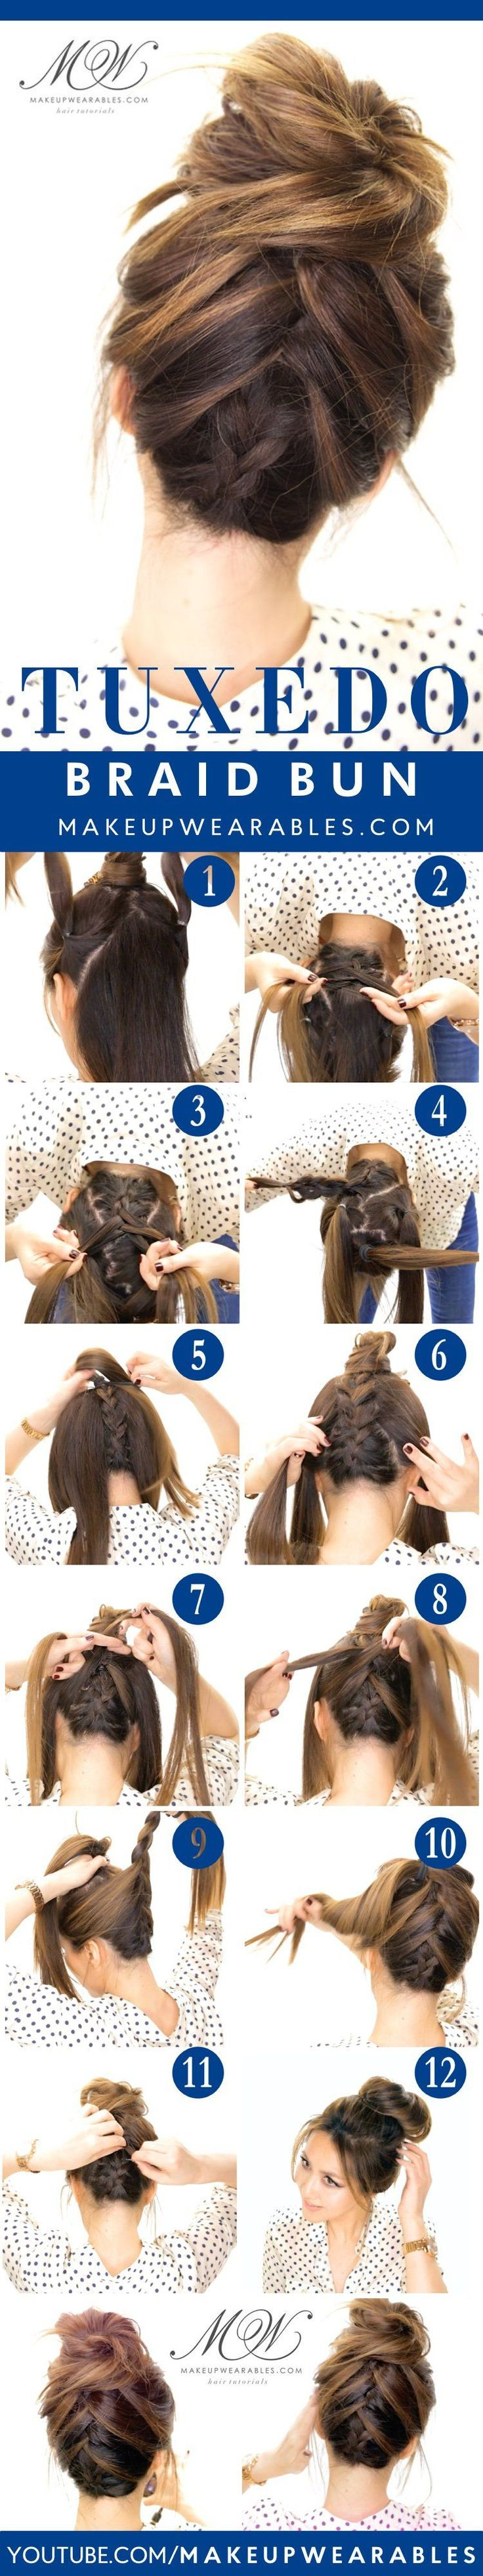 Tuxedo Braid Bun Tutorial | 5 Messy Updos for Long Hair, check it out at http://makeuptutorials.com/updos-for-long-hair-makeup-tutorials More